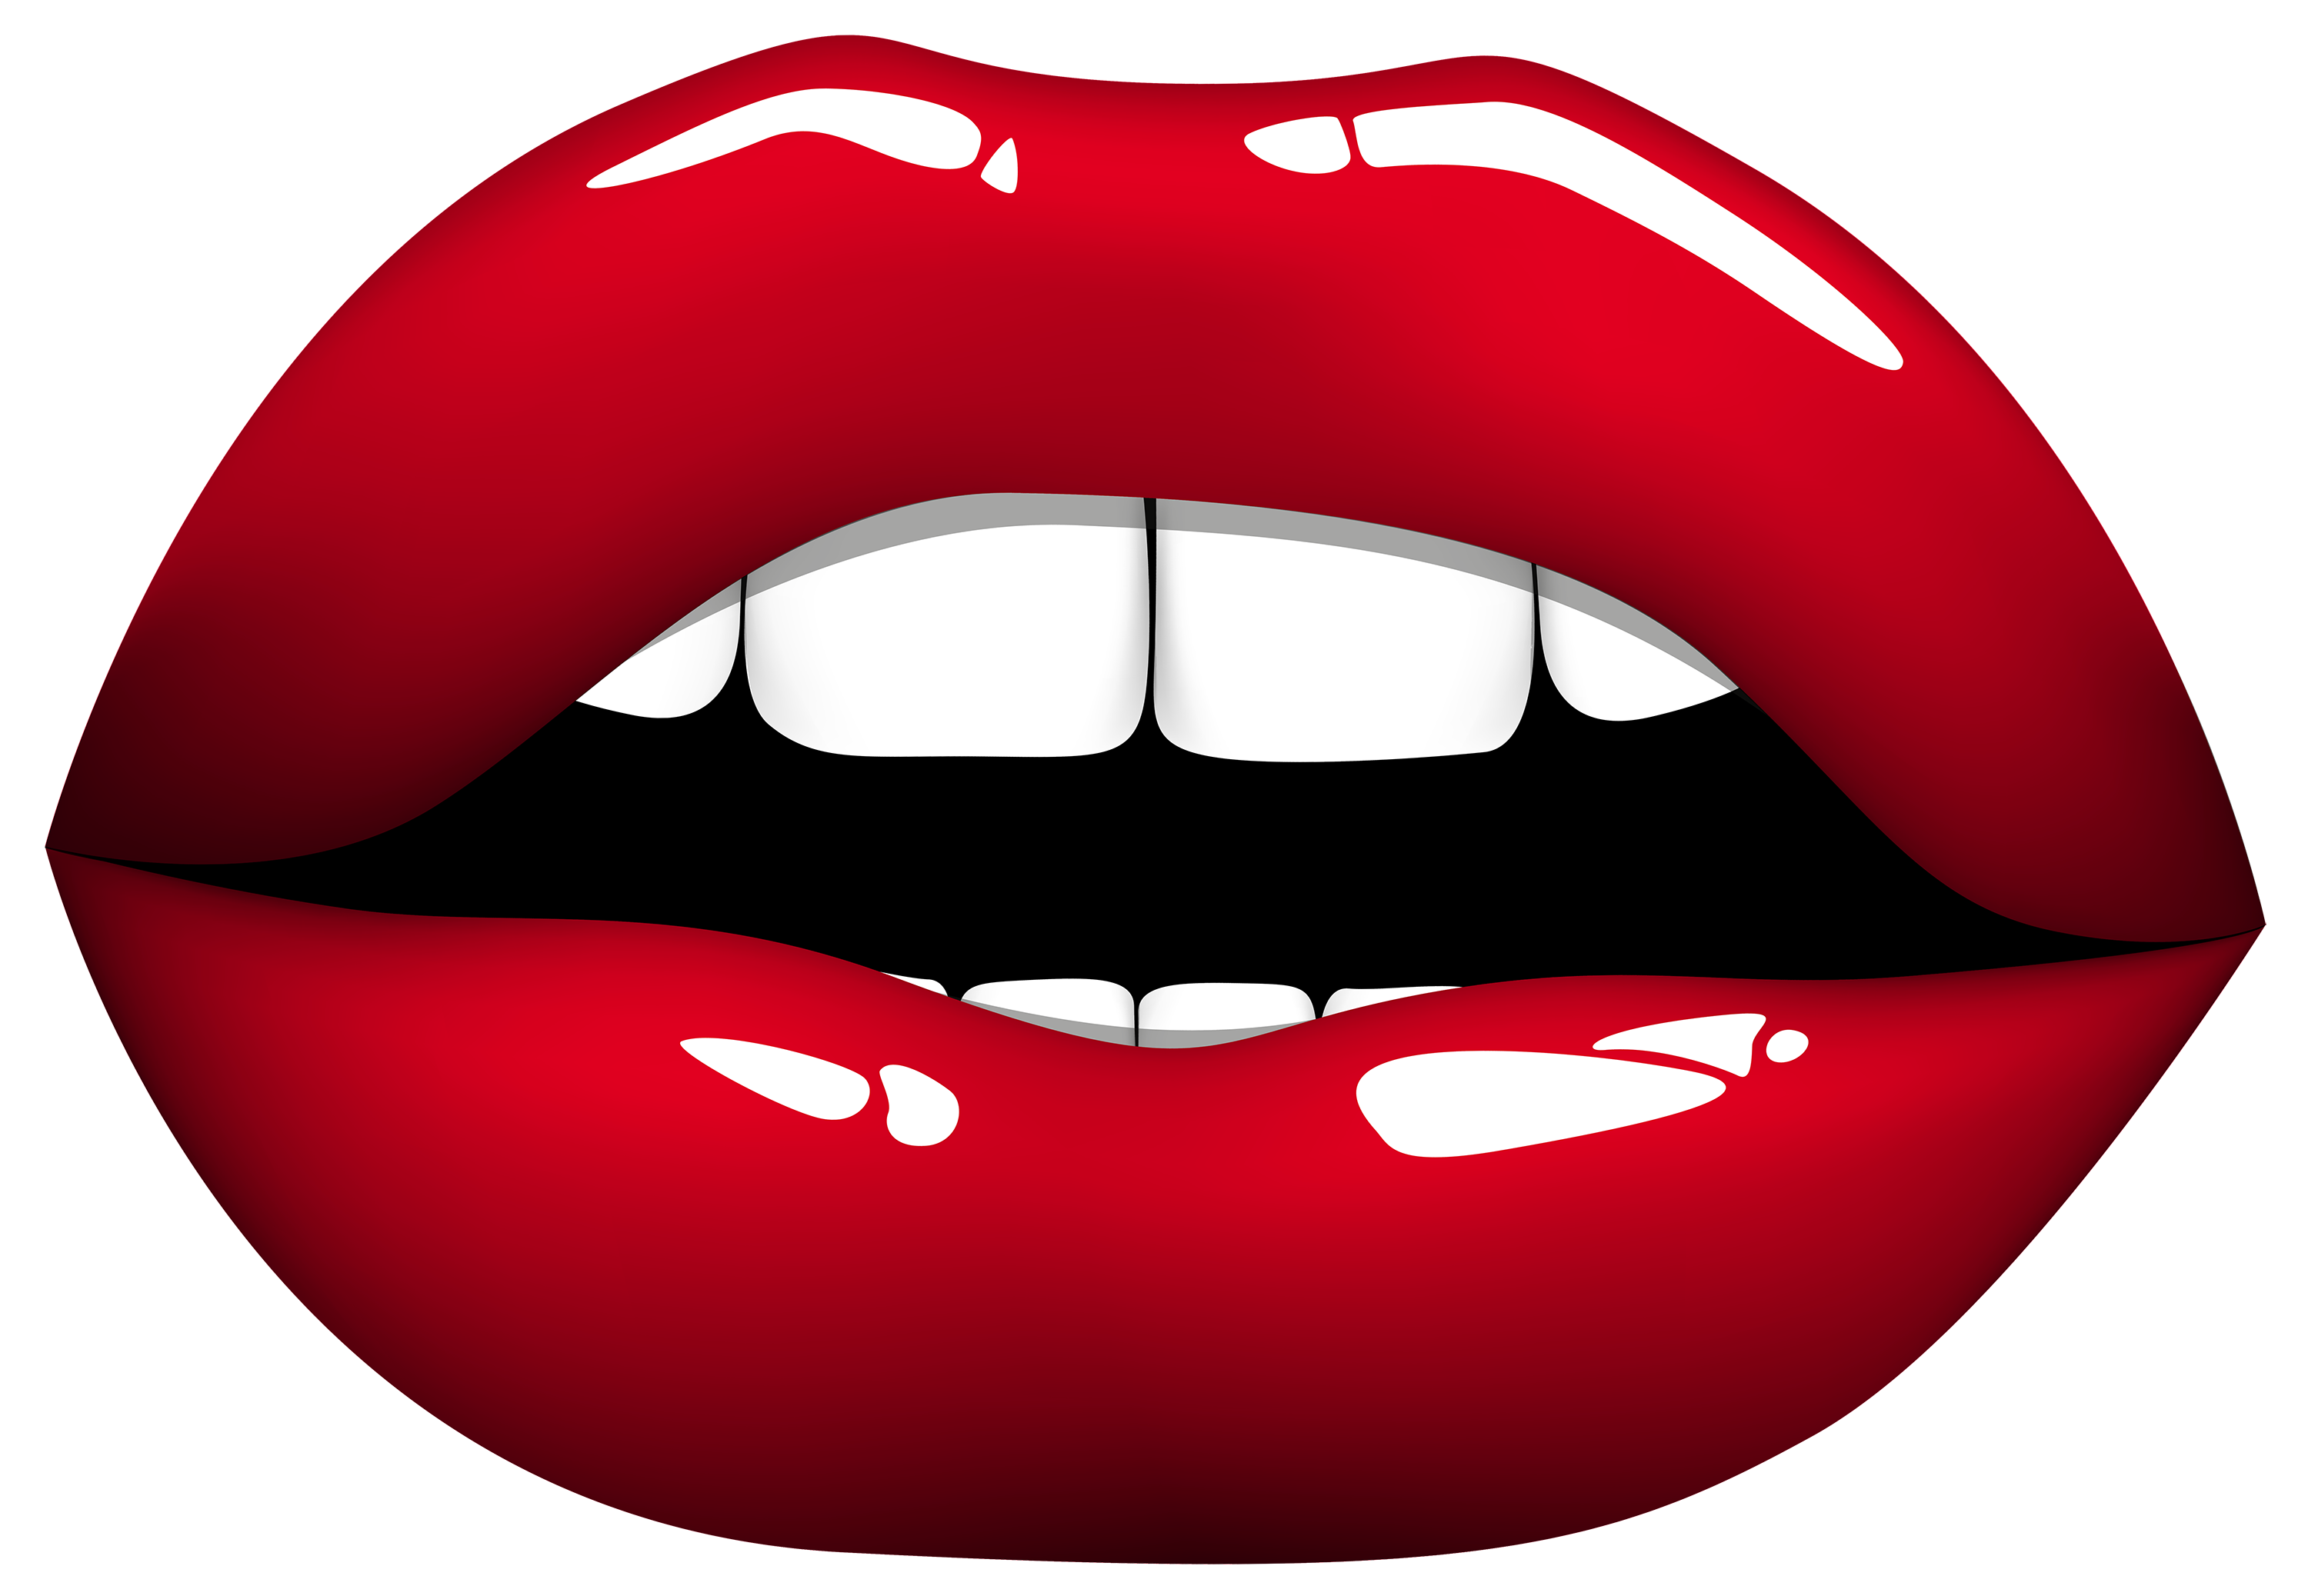 Lips clipart. Red png best web